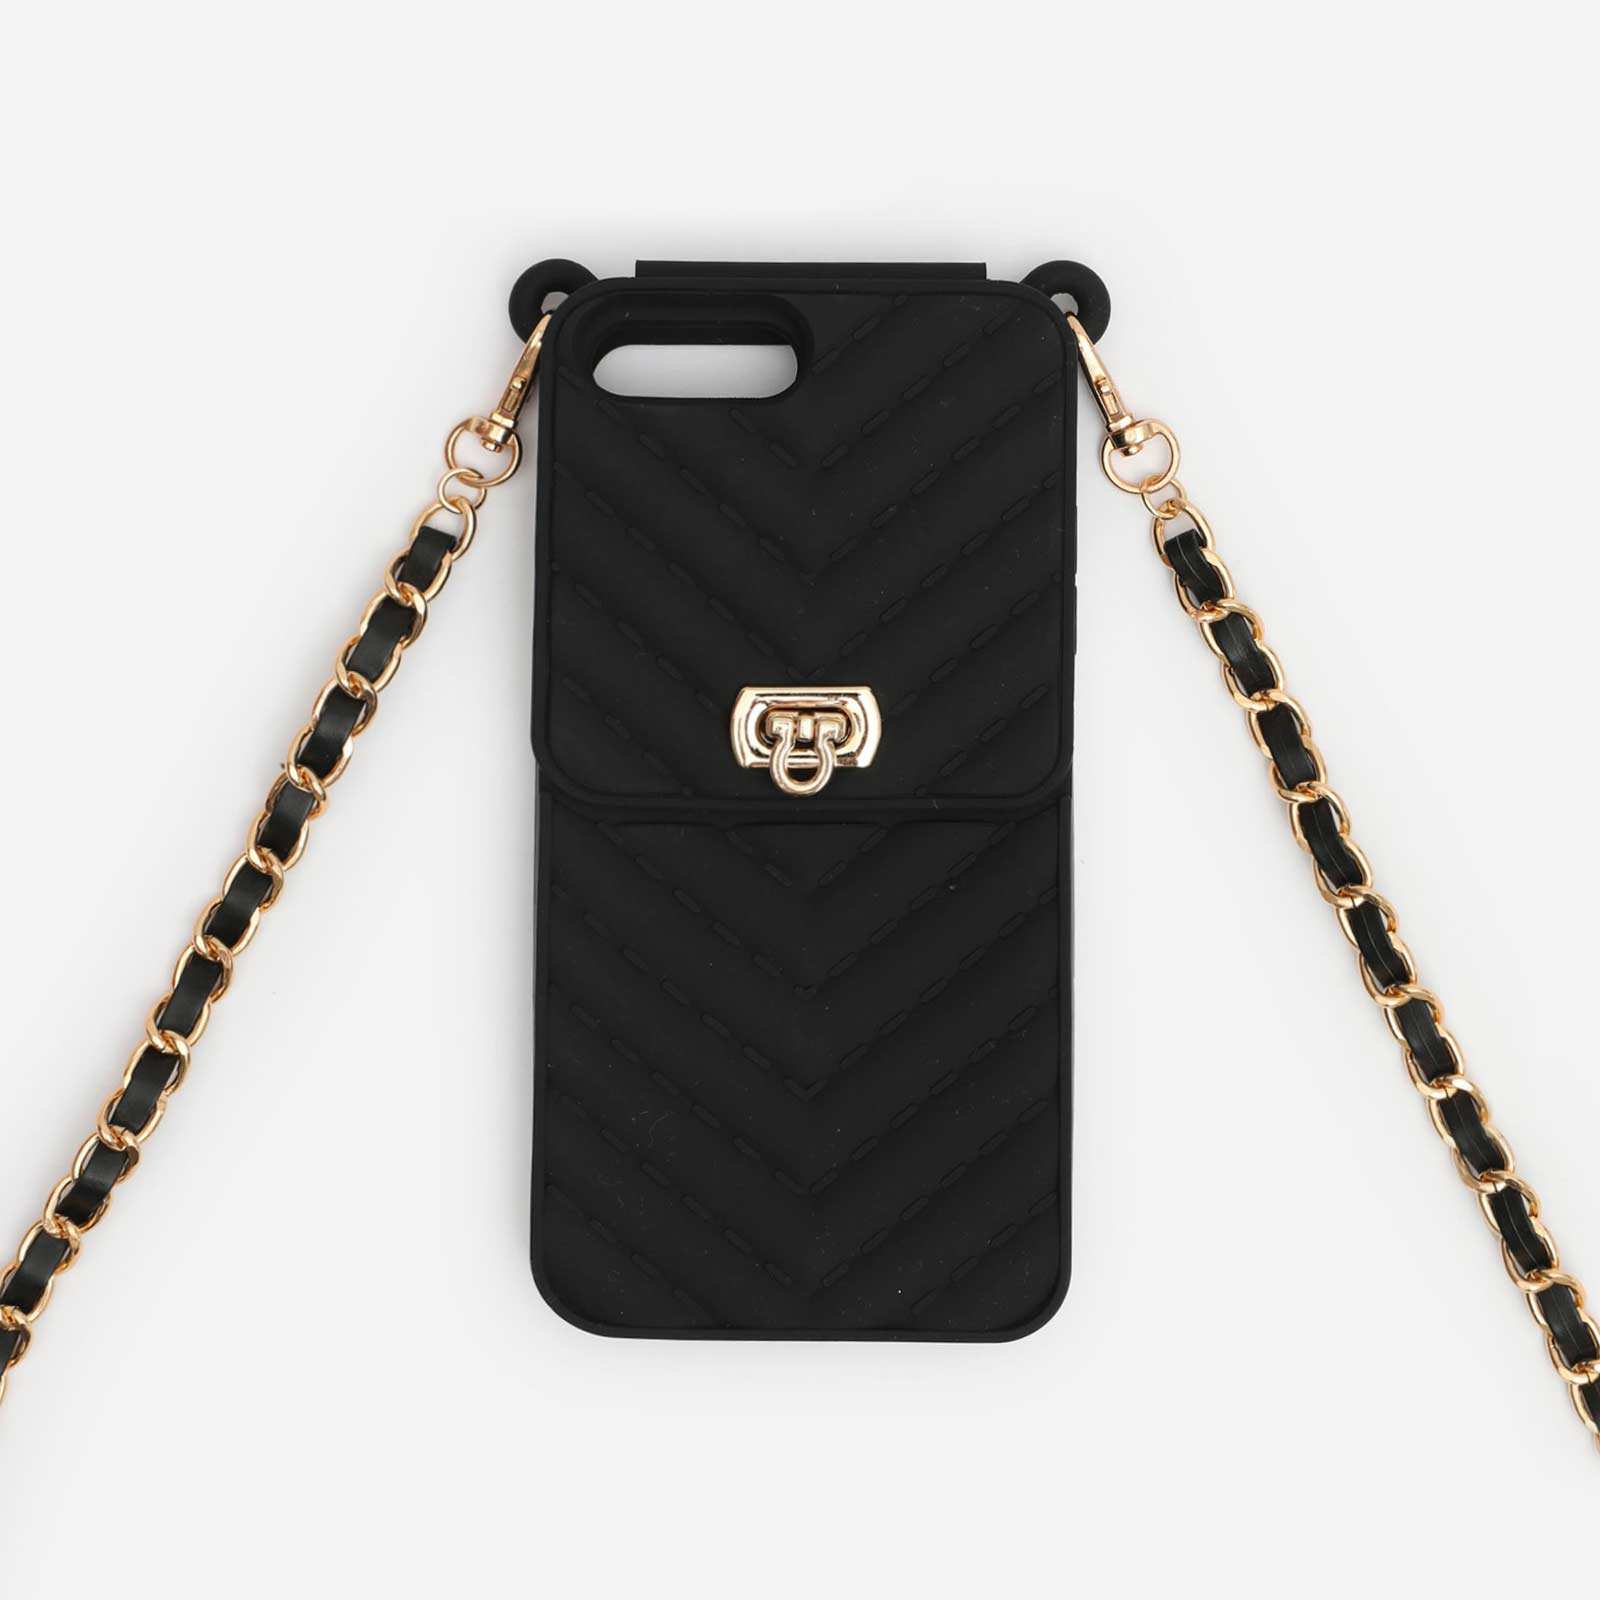 Buckle Detail Quilted Chain Phonecase In Black. iPhone 7 Plus and 8 Plus